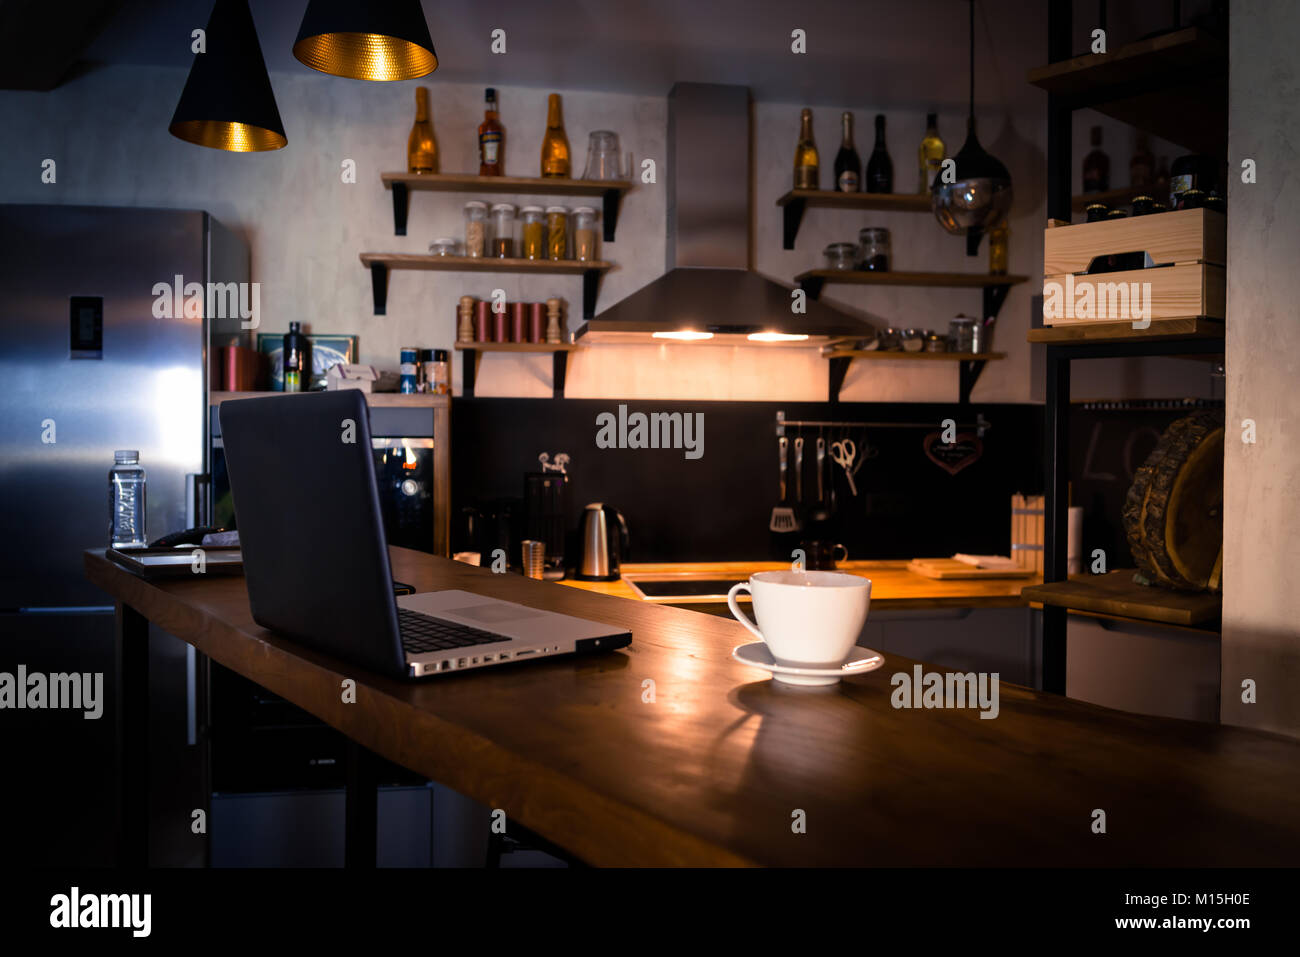 Kitchen With Bar Counter Home Atmosphere Work In The Evening After